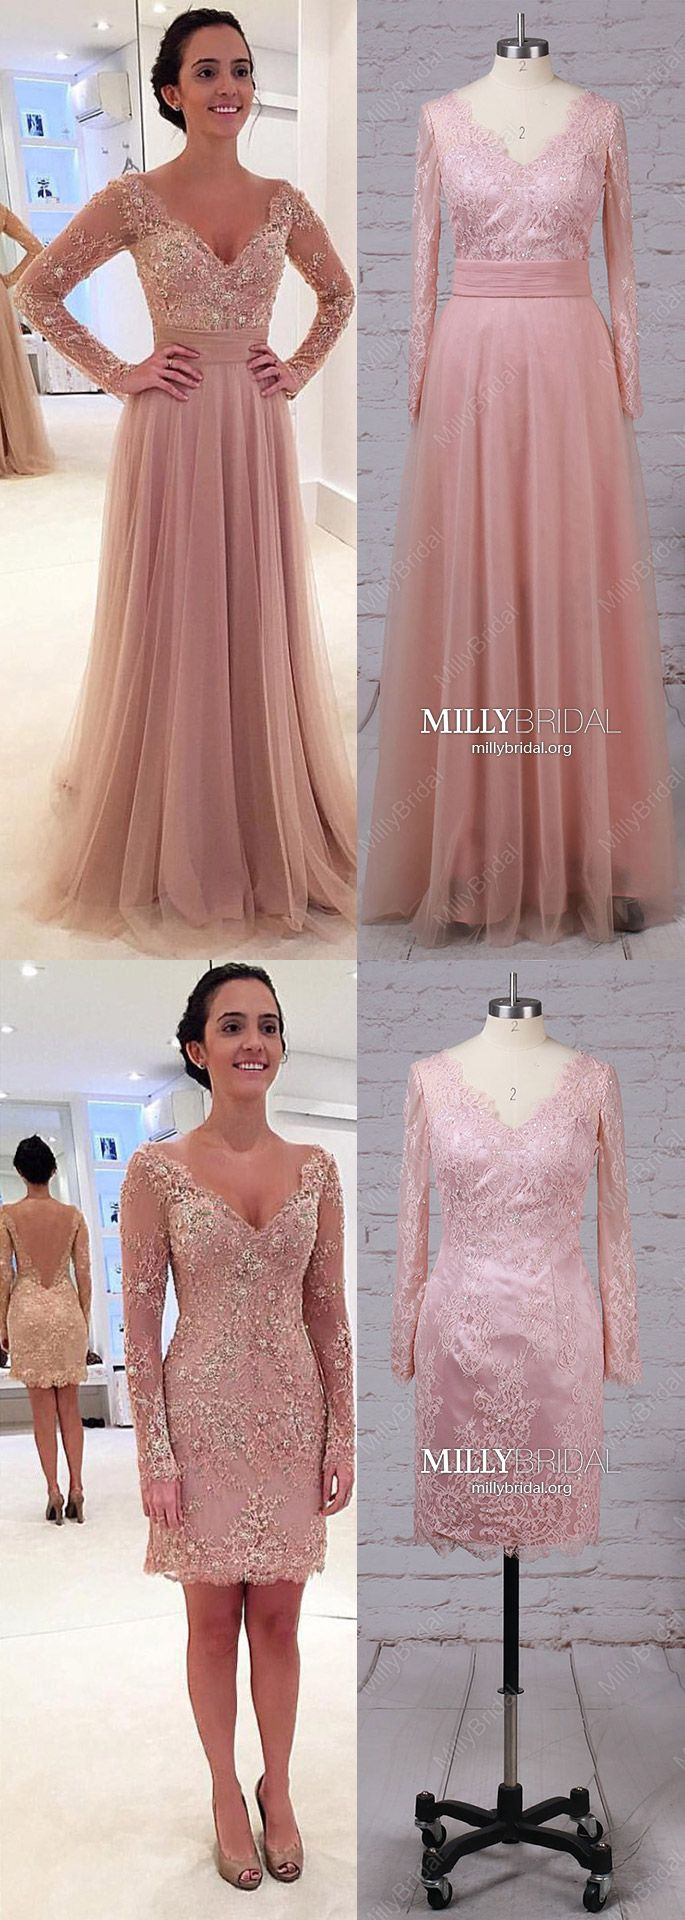 Long prom dresses with sleevesmodest prom dresses for teensvneck